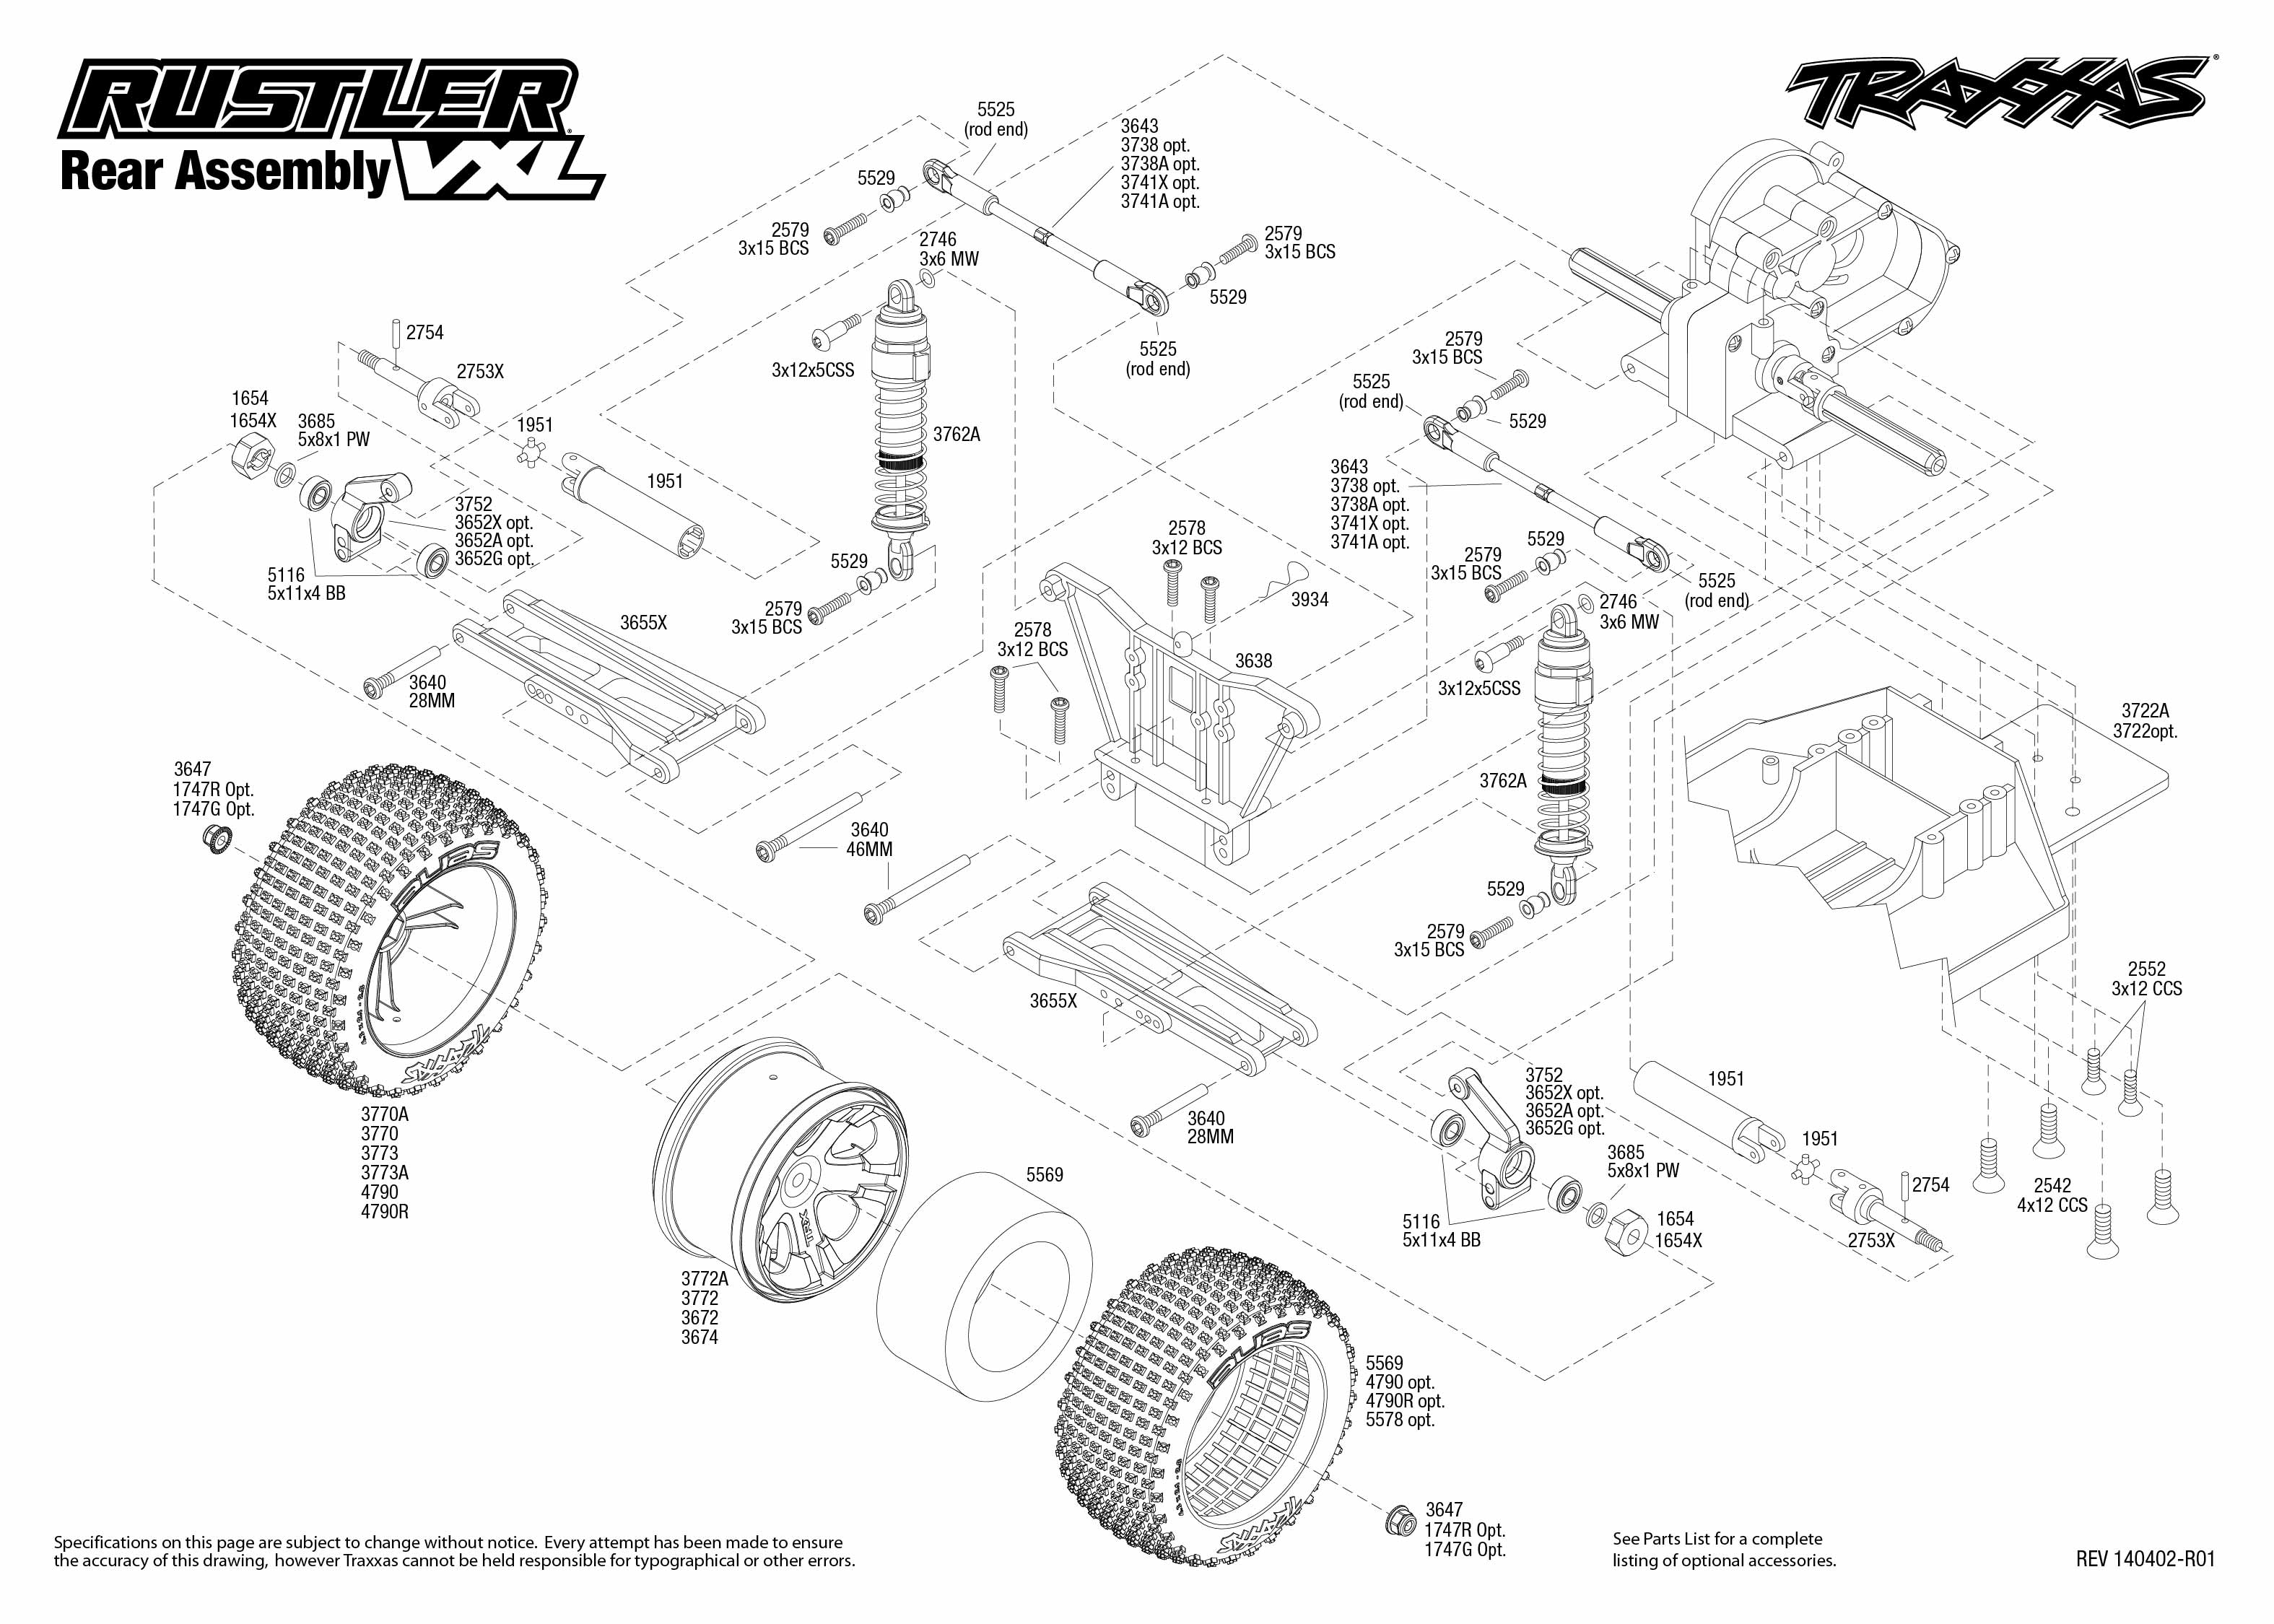 Rc 10 Wiring Diagram Schematic Basic Race Car Chassis Transmission Trusted Diagrams Brushless